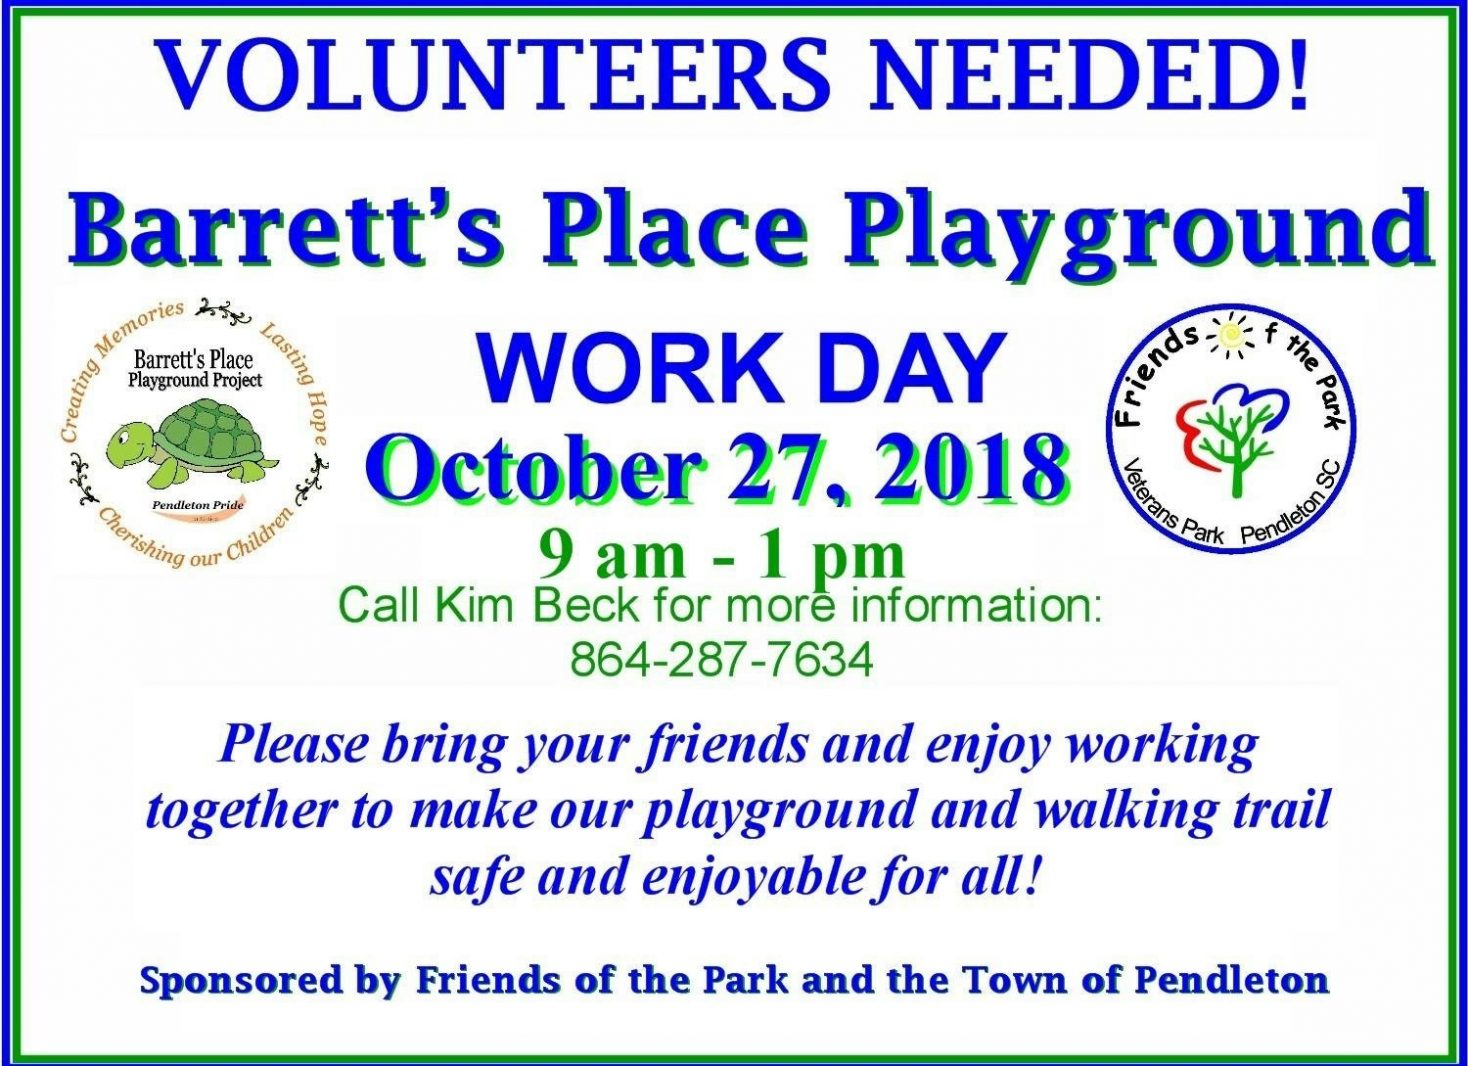 Barrett's Place Playground Fall Maintenance Day